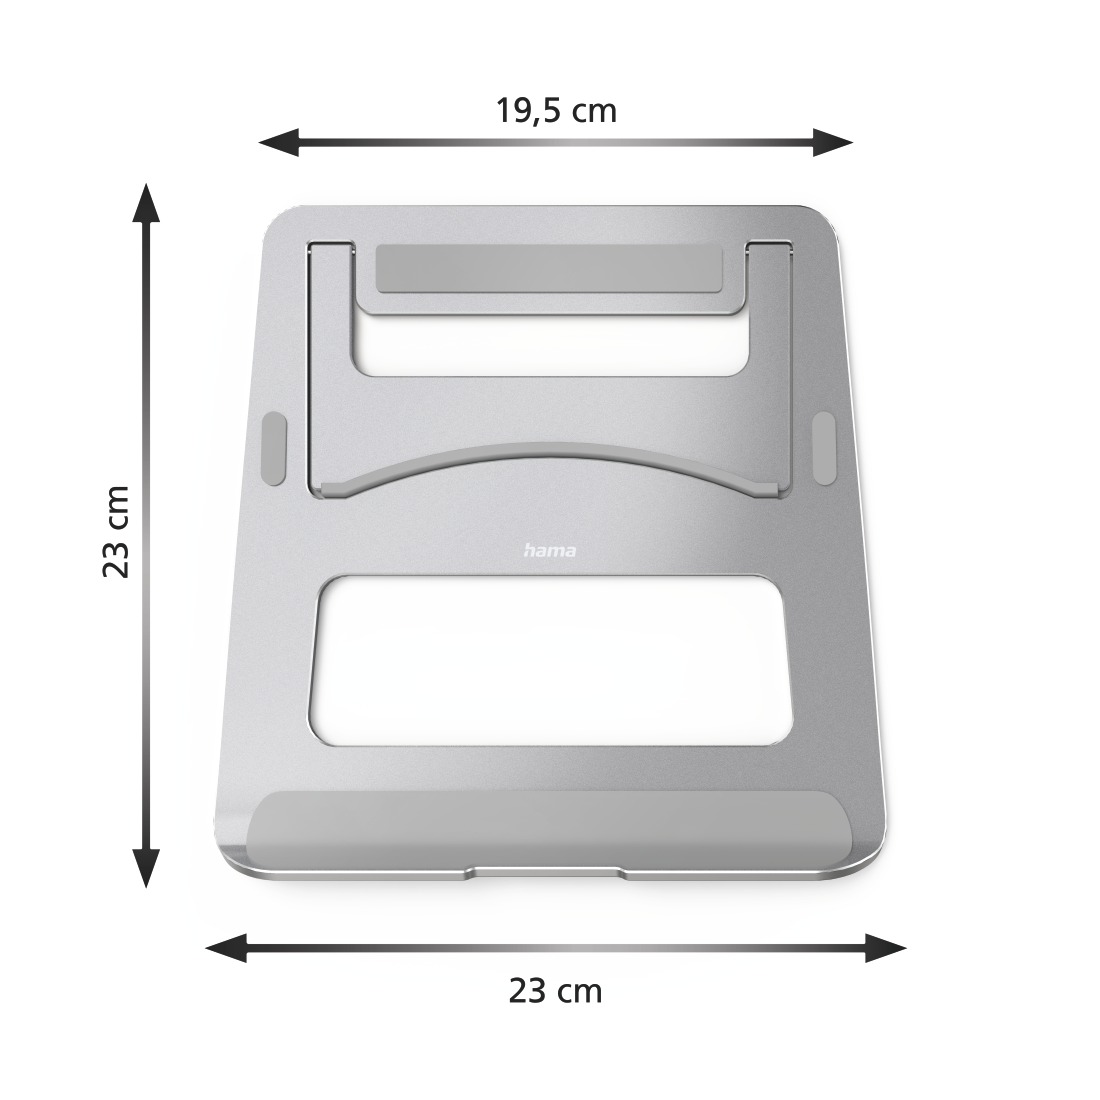 abx3 High-Res Image 3 - Hama, Support pour ordinateur portable Aluminium, argent